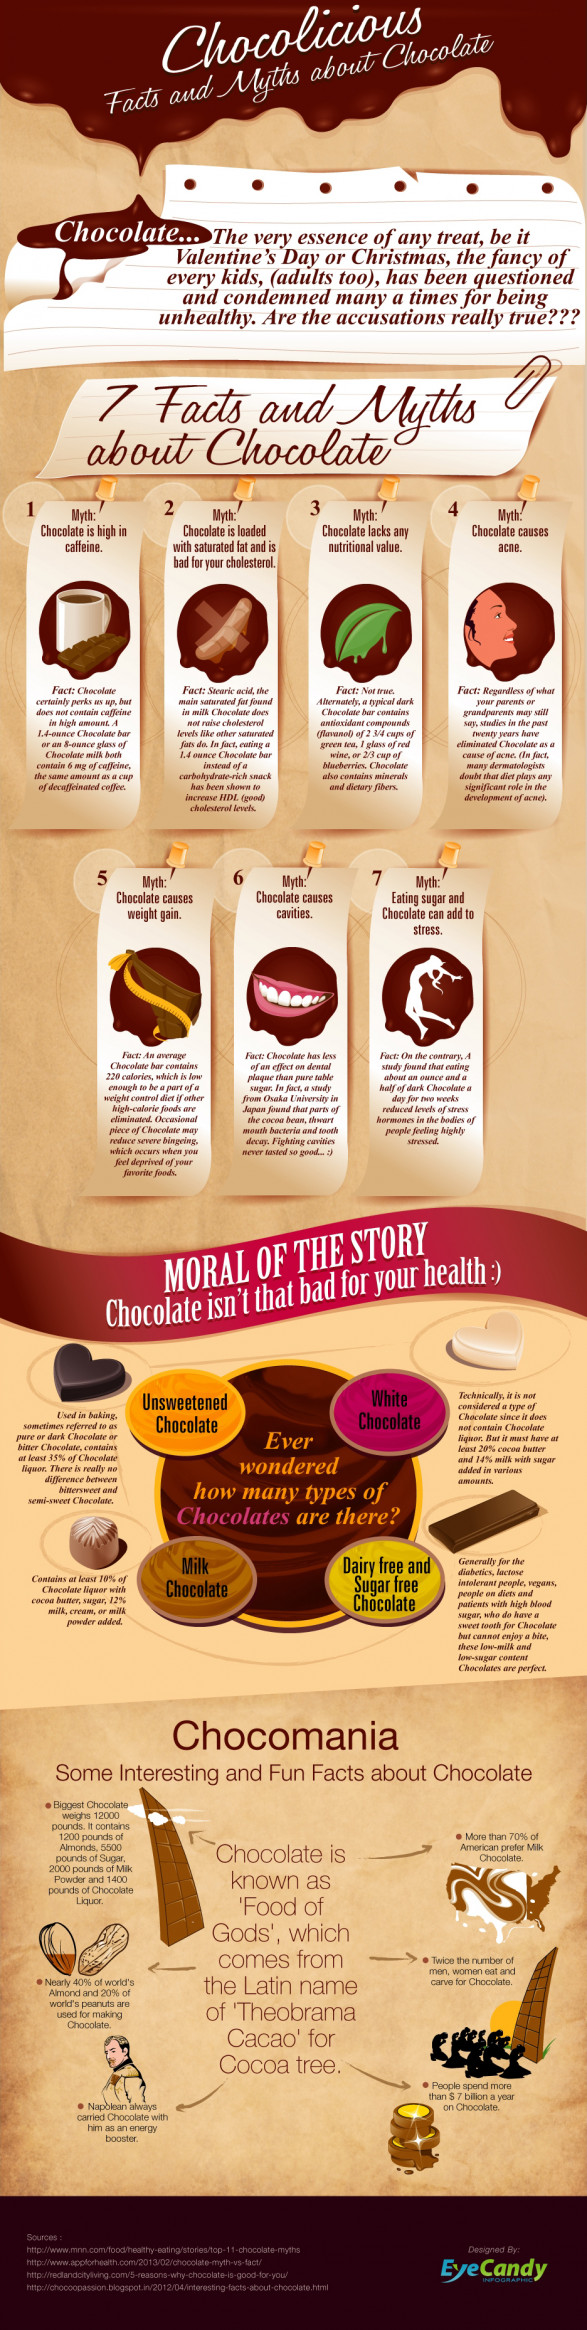 Chocolicious - Facts and Myths about Chocolate